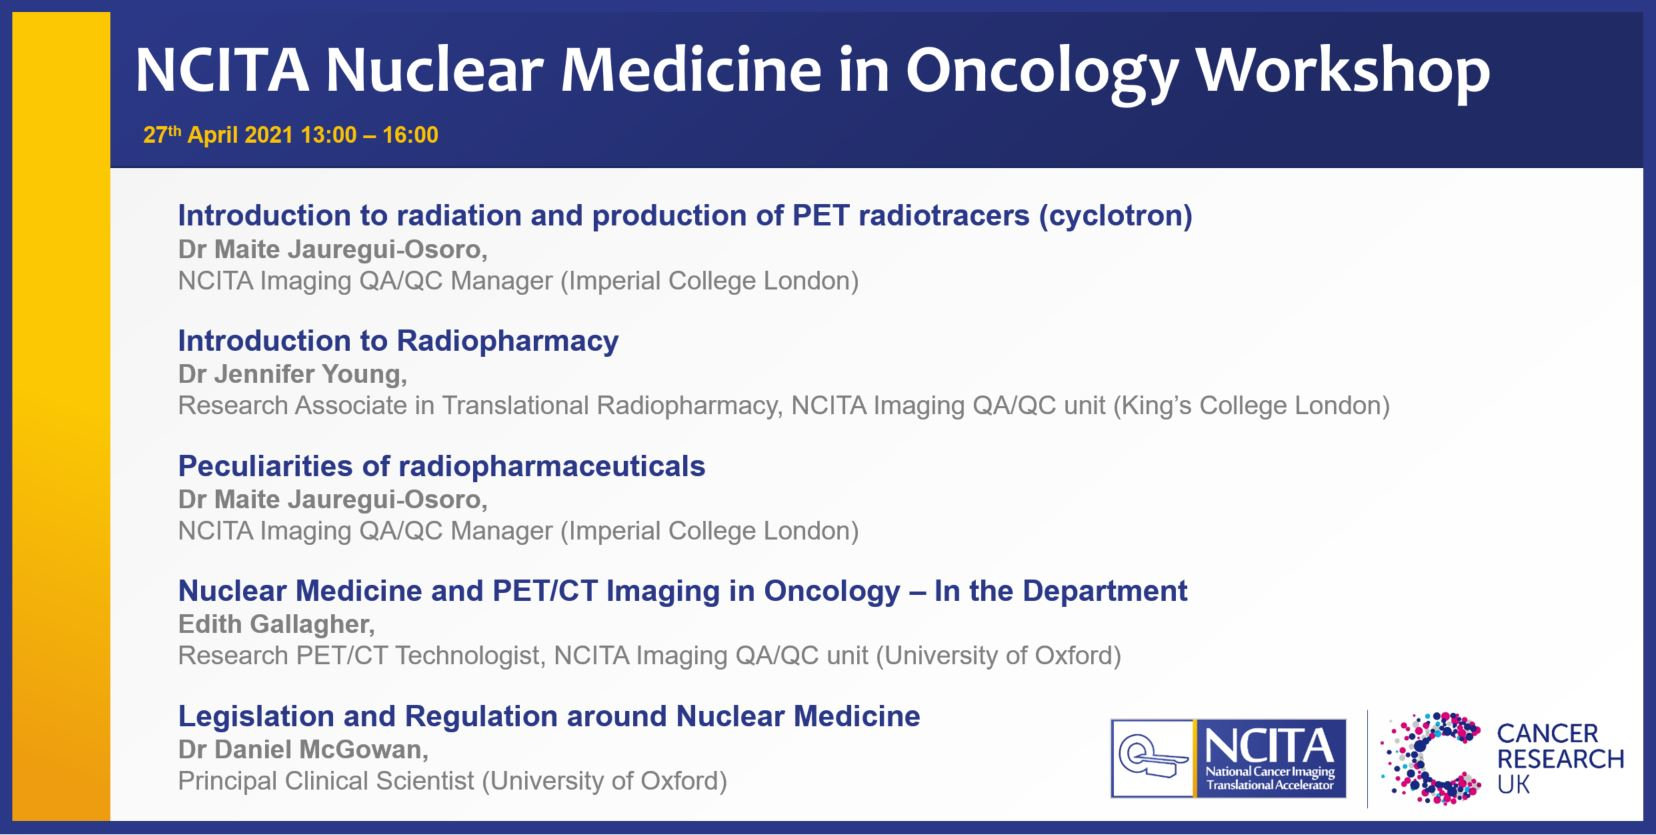 NCITA Nuclear Medicine in Oncology Training Workshop